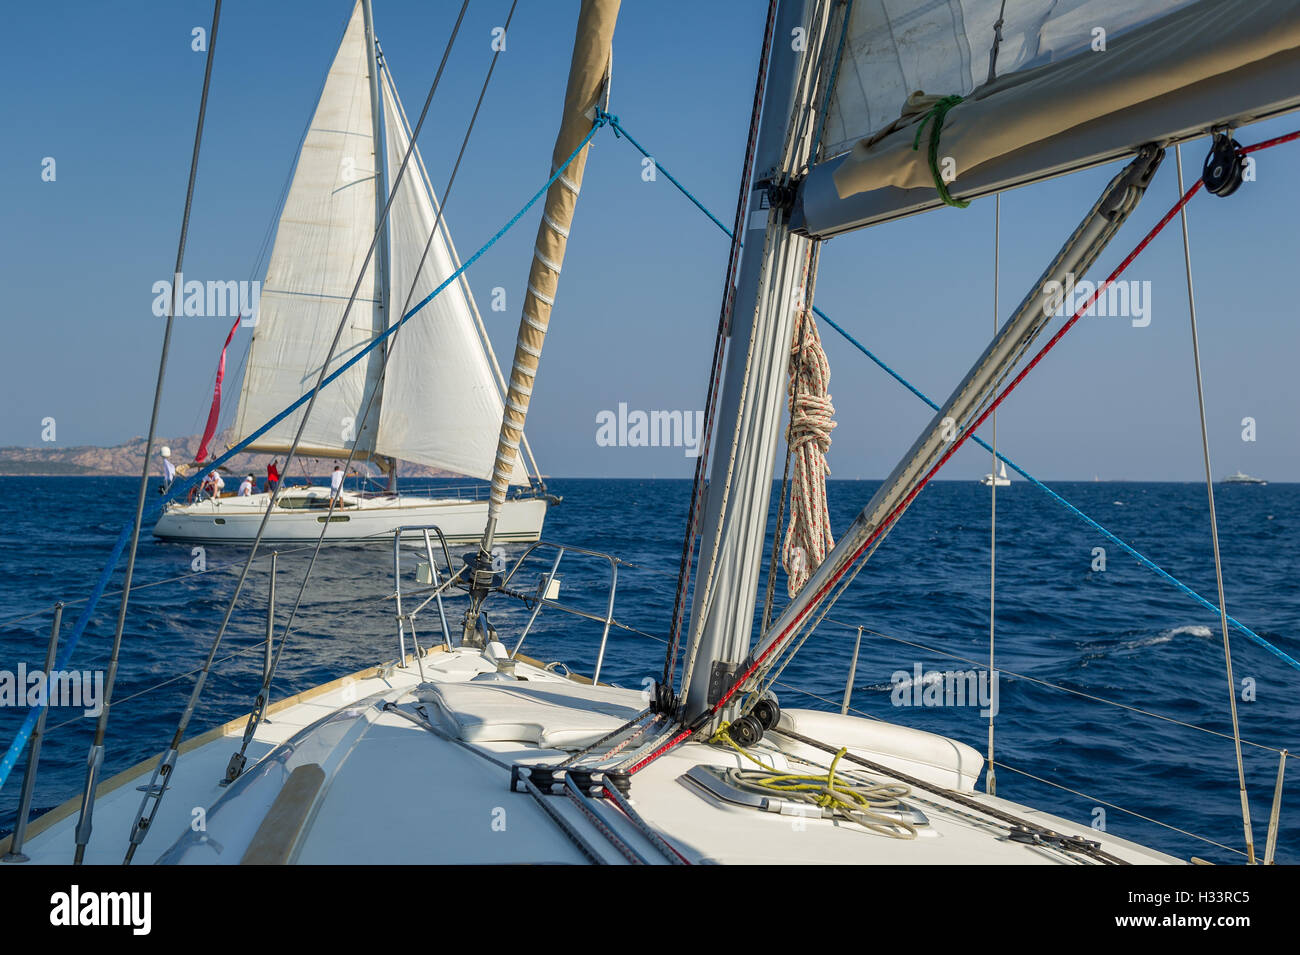 View from one sailing yacht deck to another cruising boat. - Stock Image